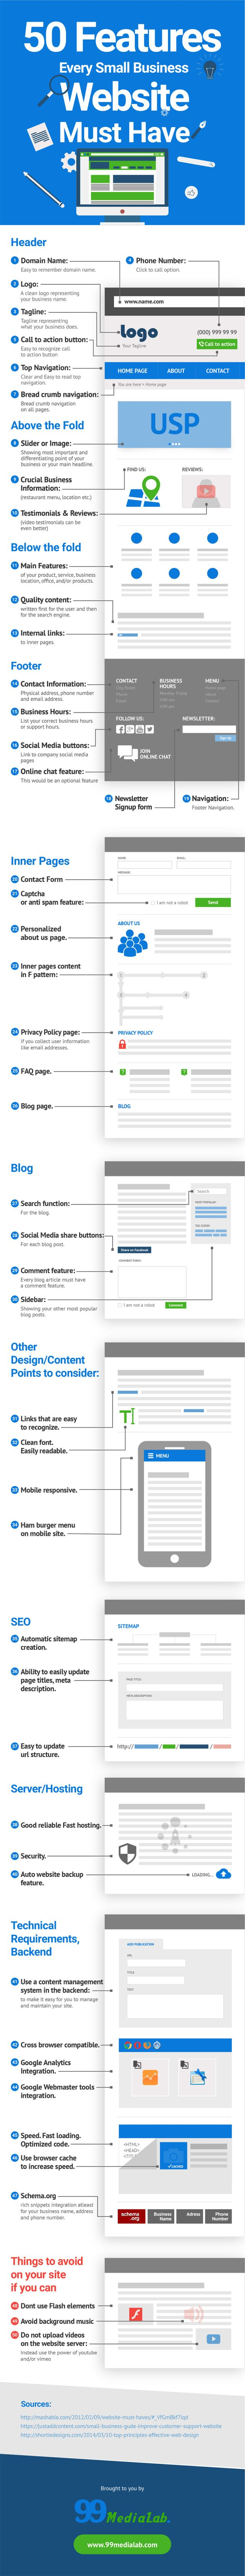 Will Your Website Succeed? 50 Features Every Business Website Should Have #Infographic